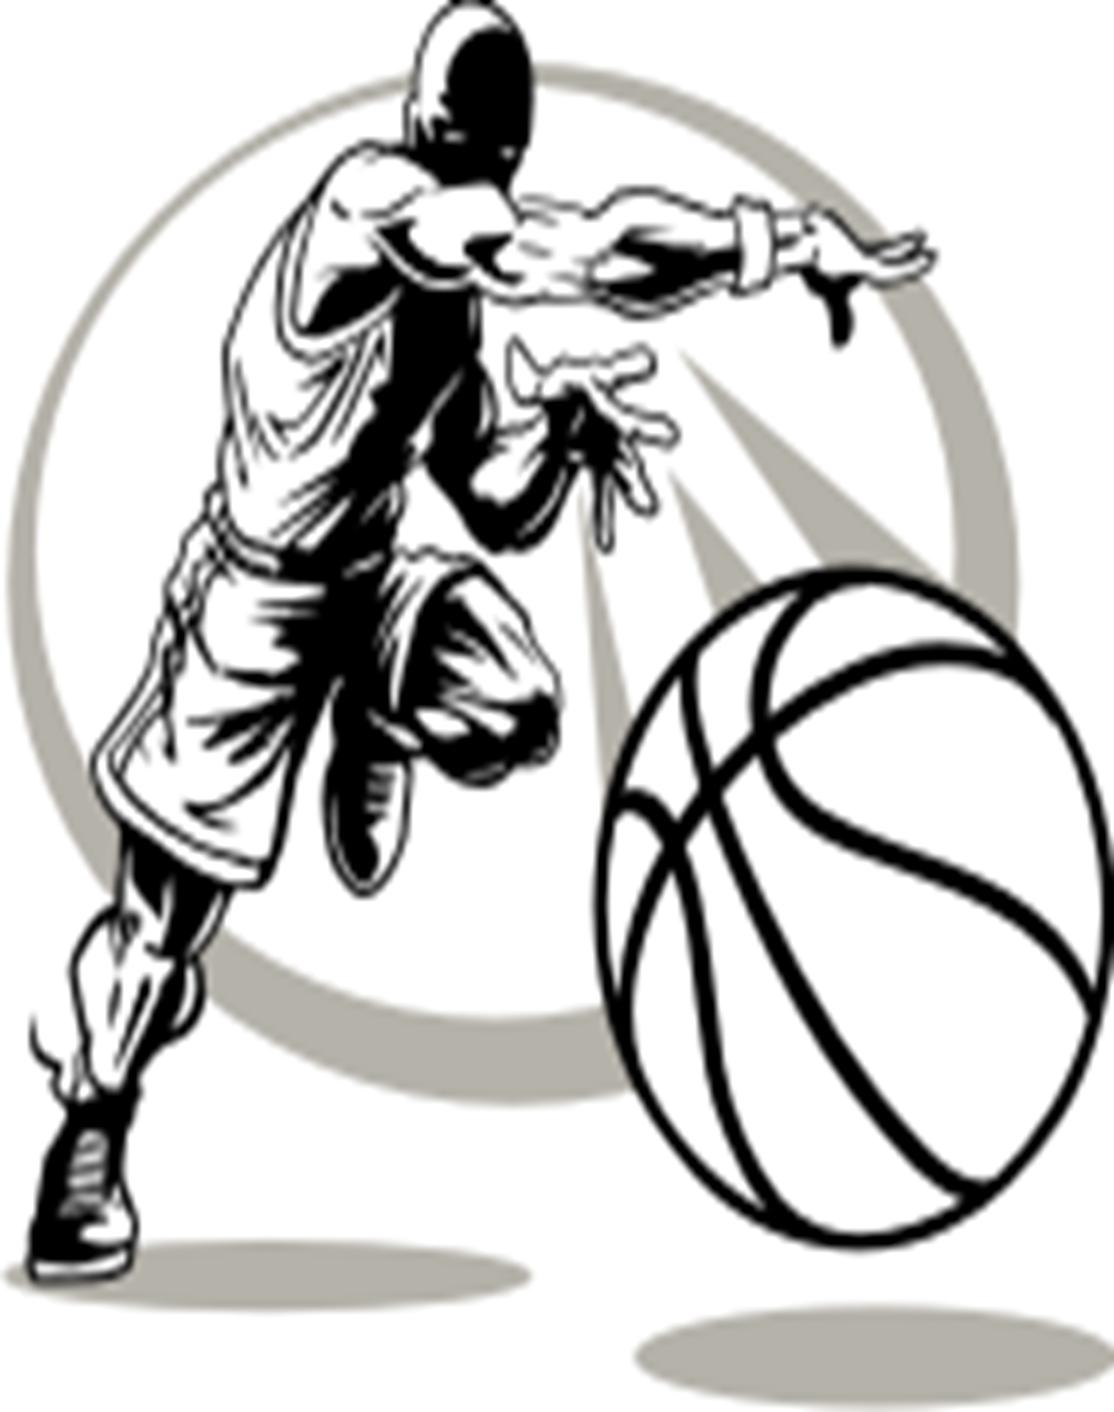 Free Images Of Basketball Download Free Clip Art Free